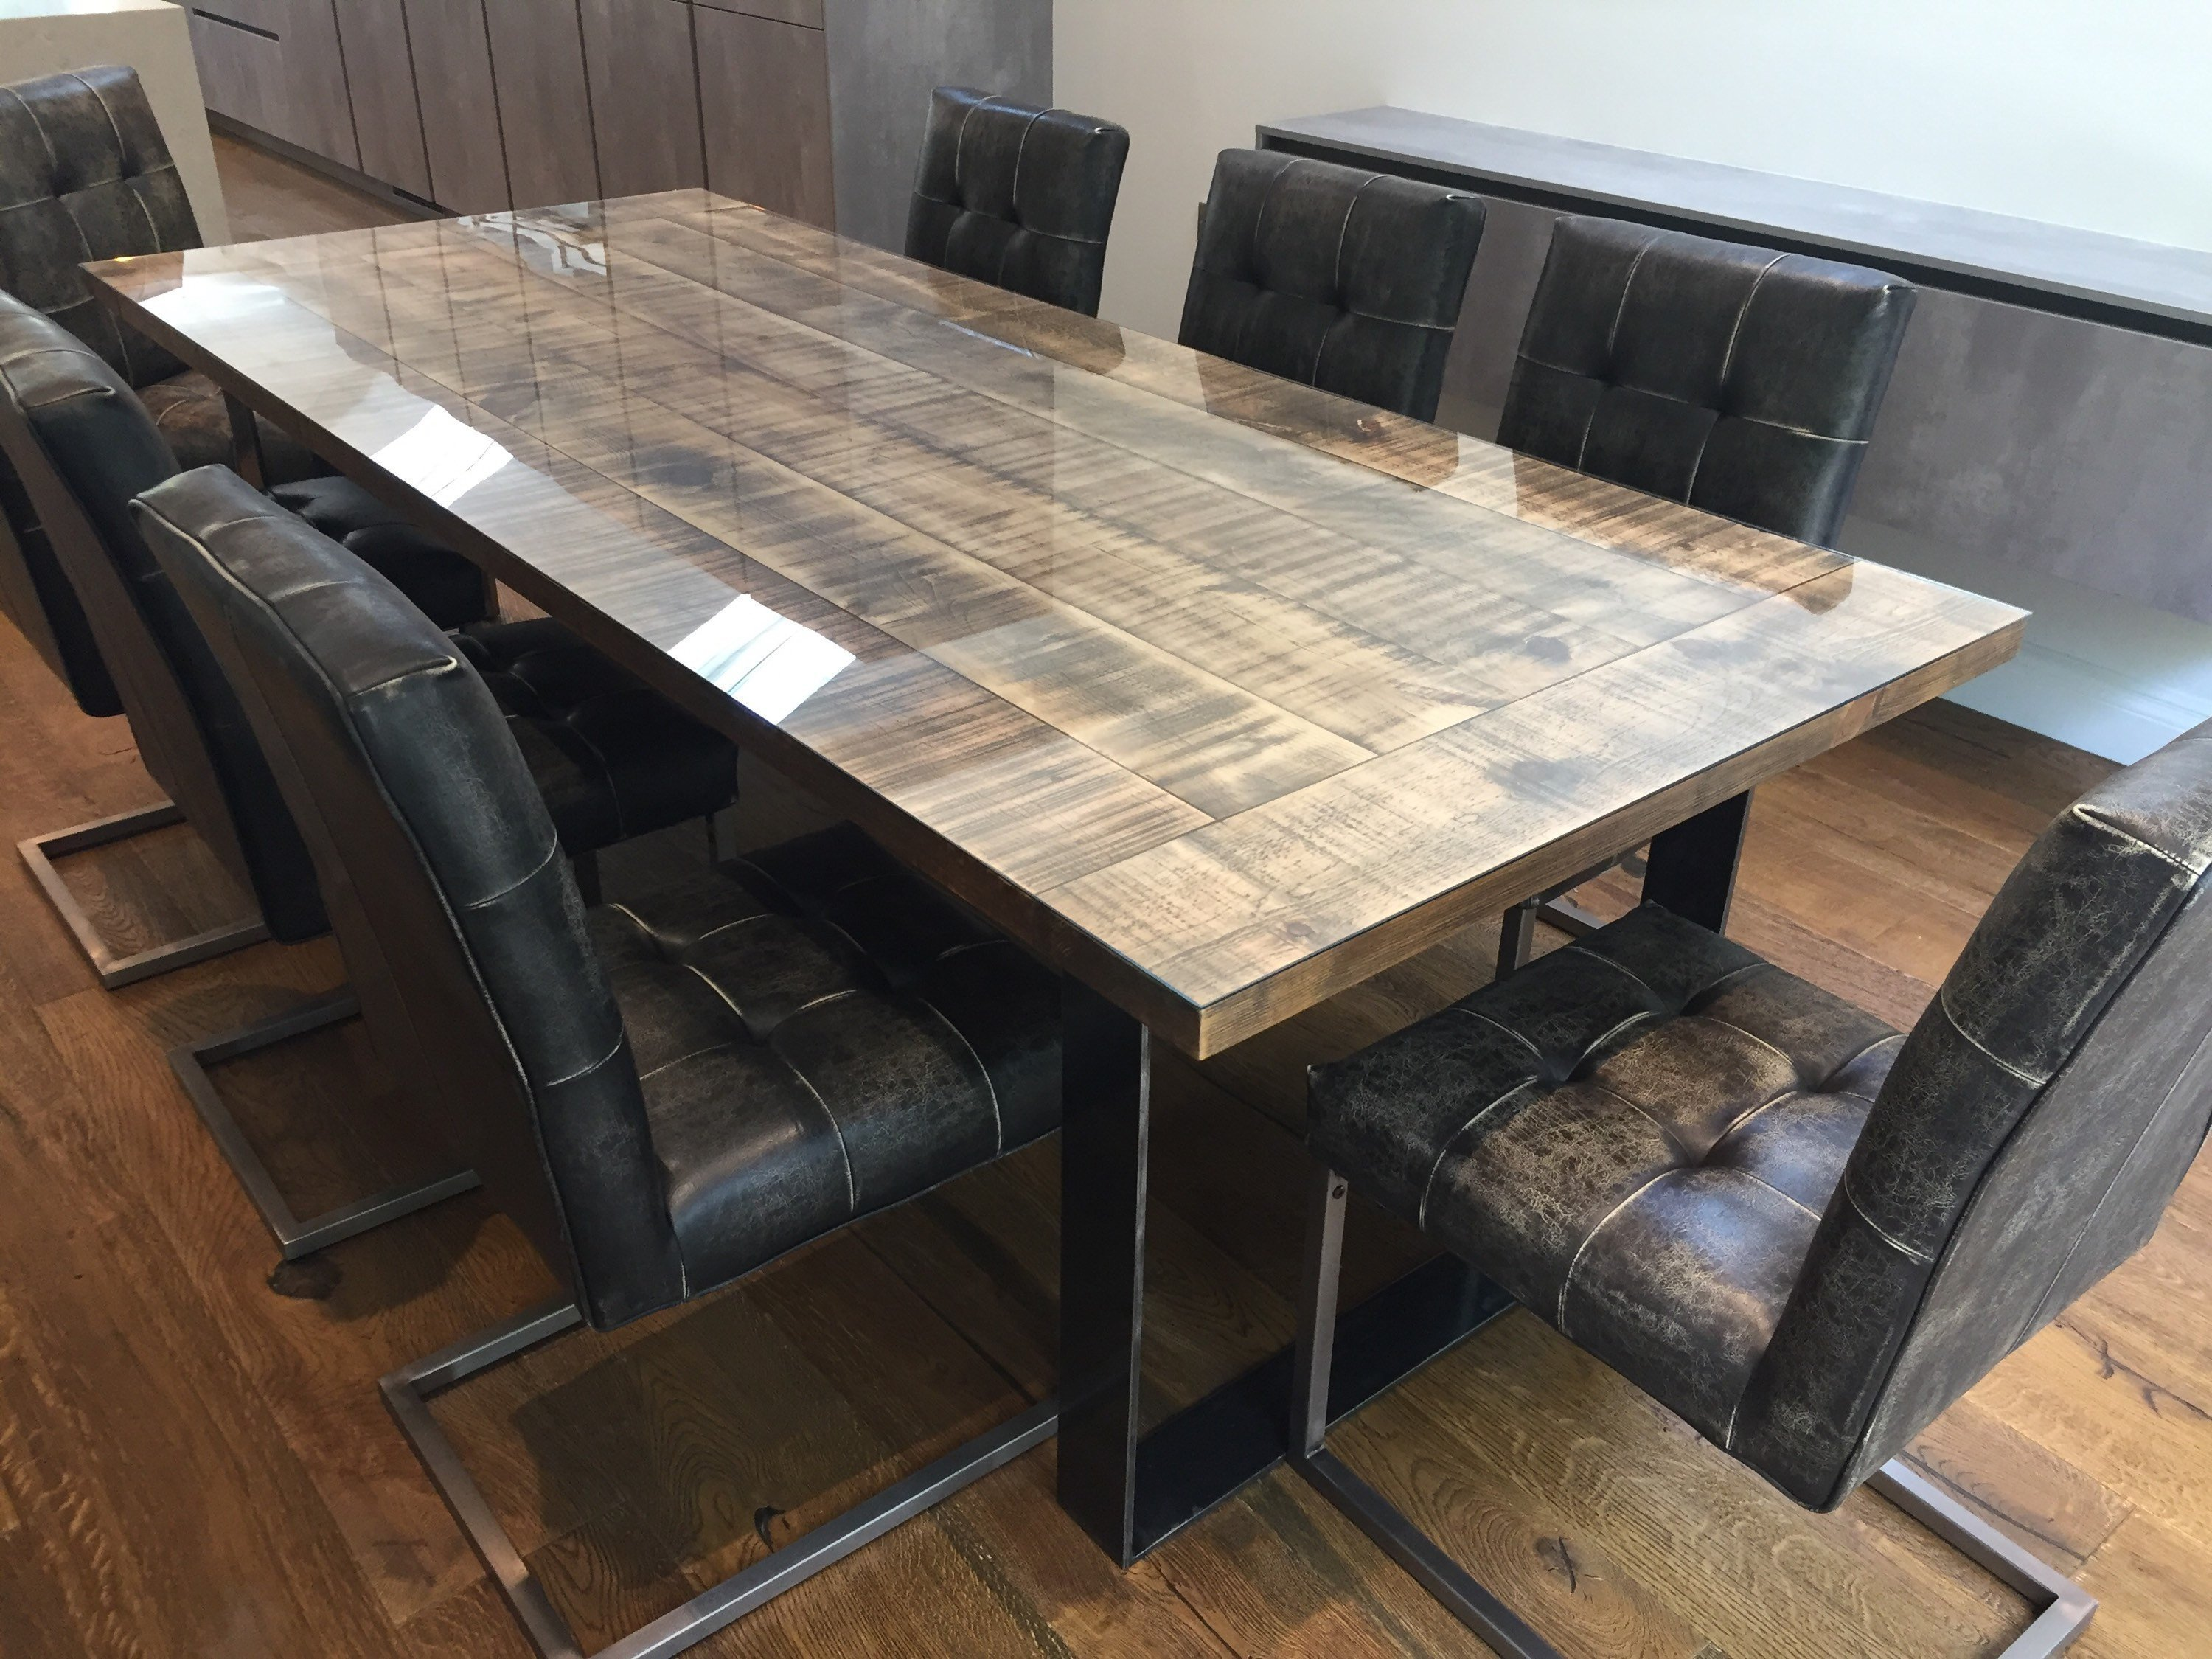 Groovy Industrial Dining Table With Glass Top 8 Seater Dining Table Rustic Industrial Furniture Board Room Table Home Interior And Landscaping Eliaenasavecom